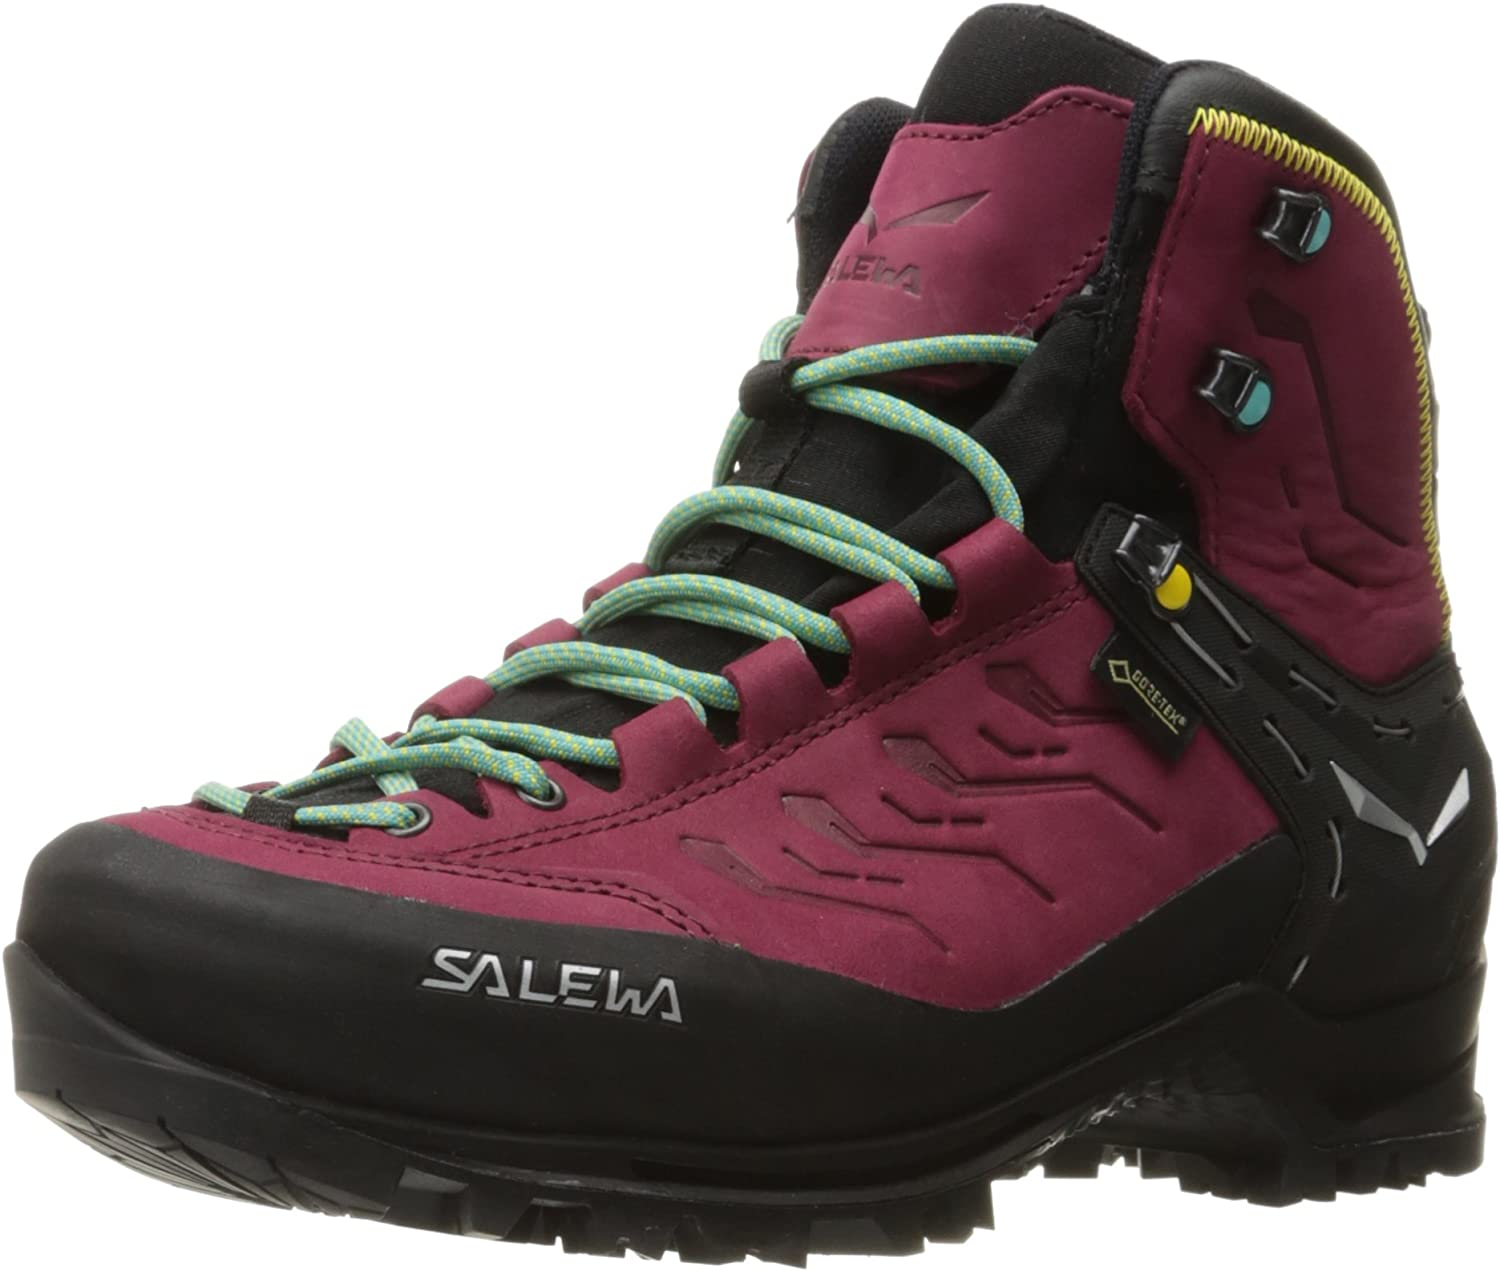 Salewa Womens Rapace GTXw Mountaineering Boot